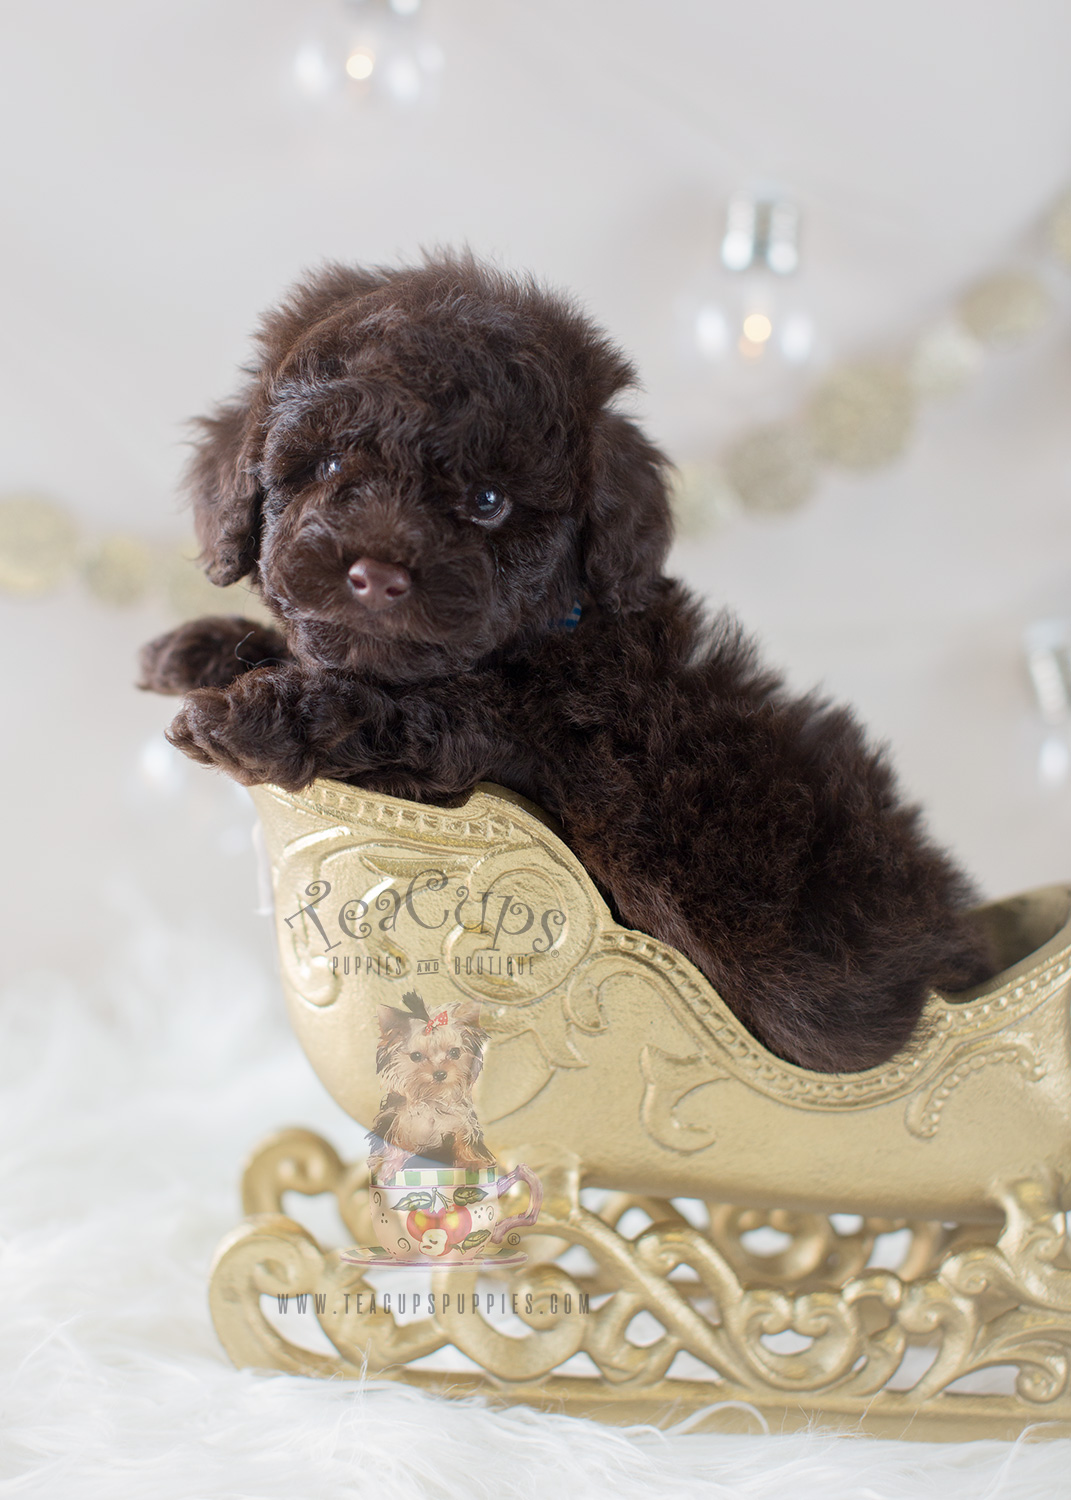 Teacup Puppies Chocolate Toy Poodle Puppy #294